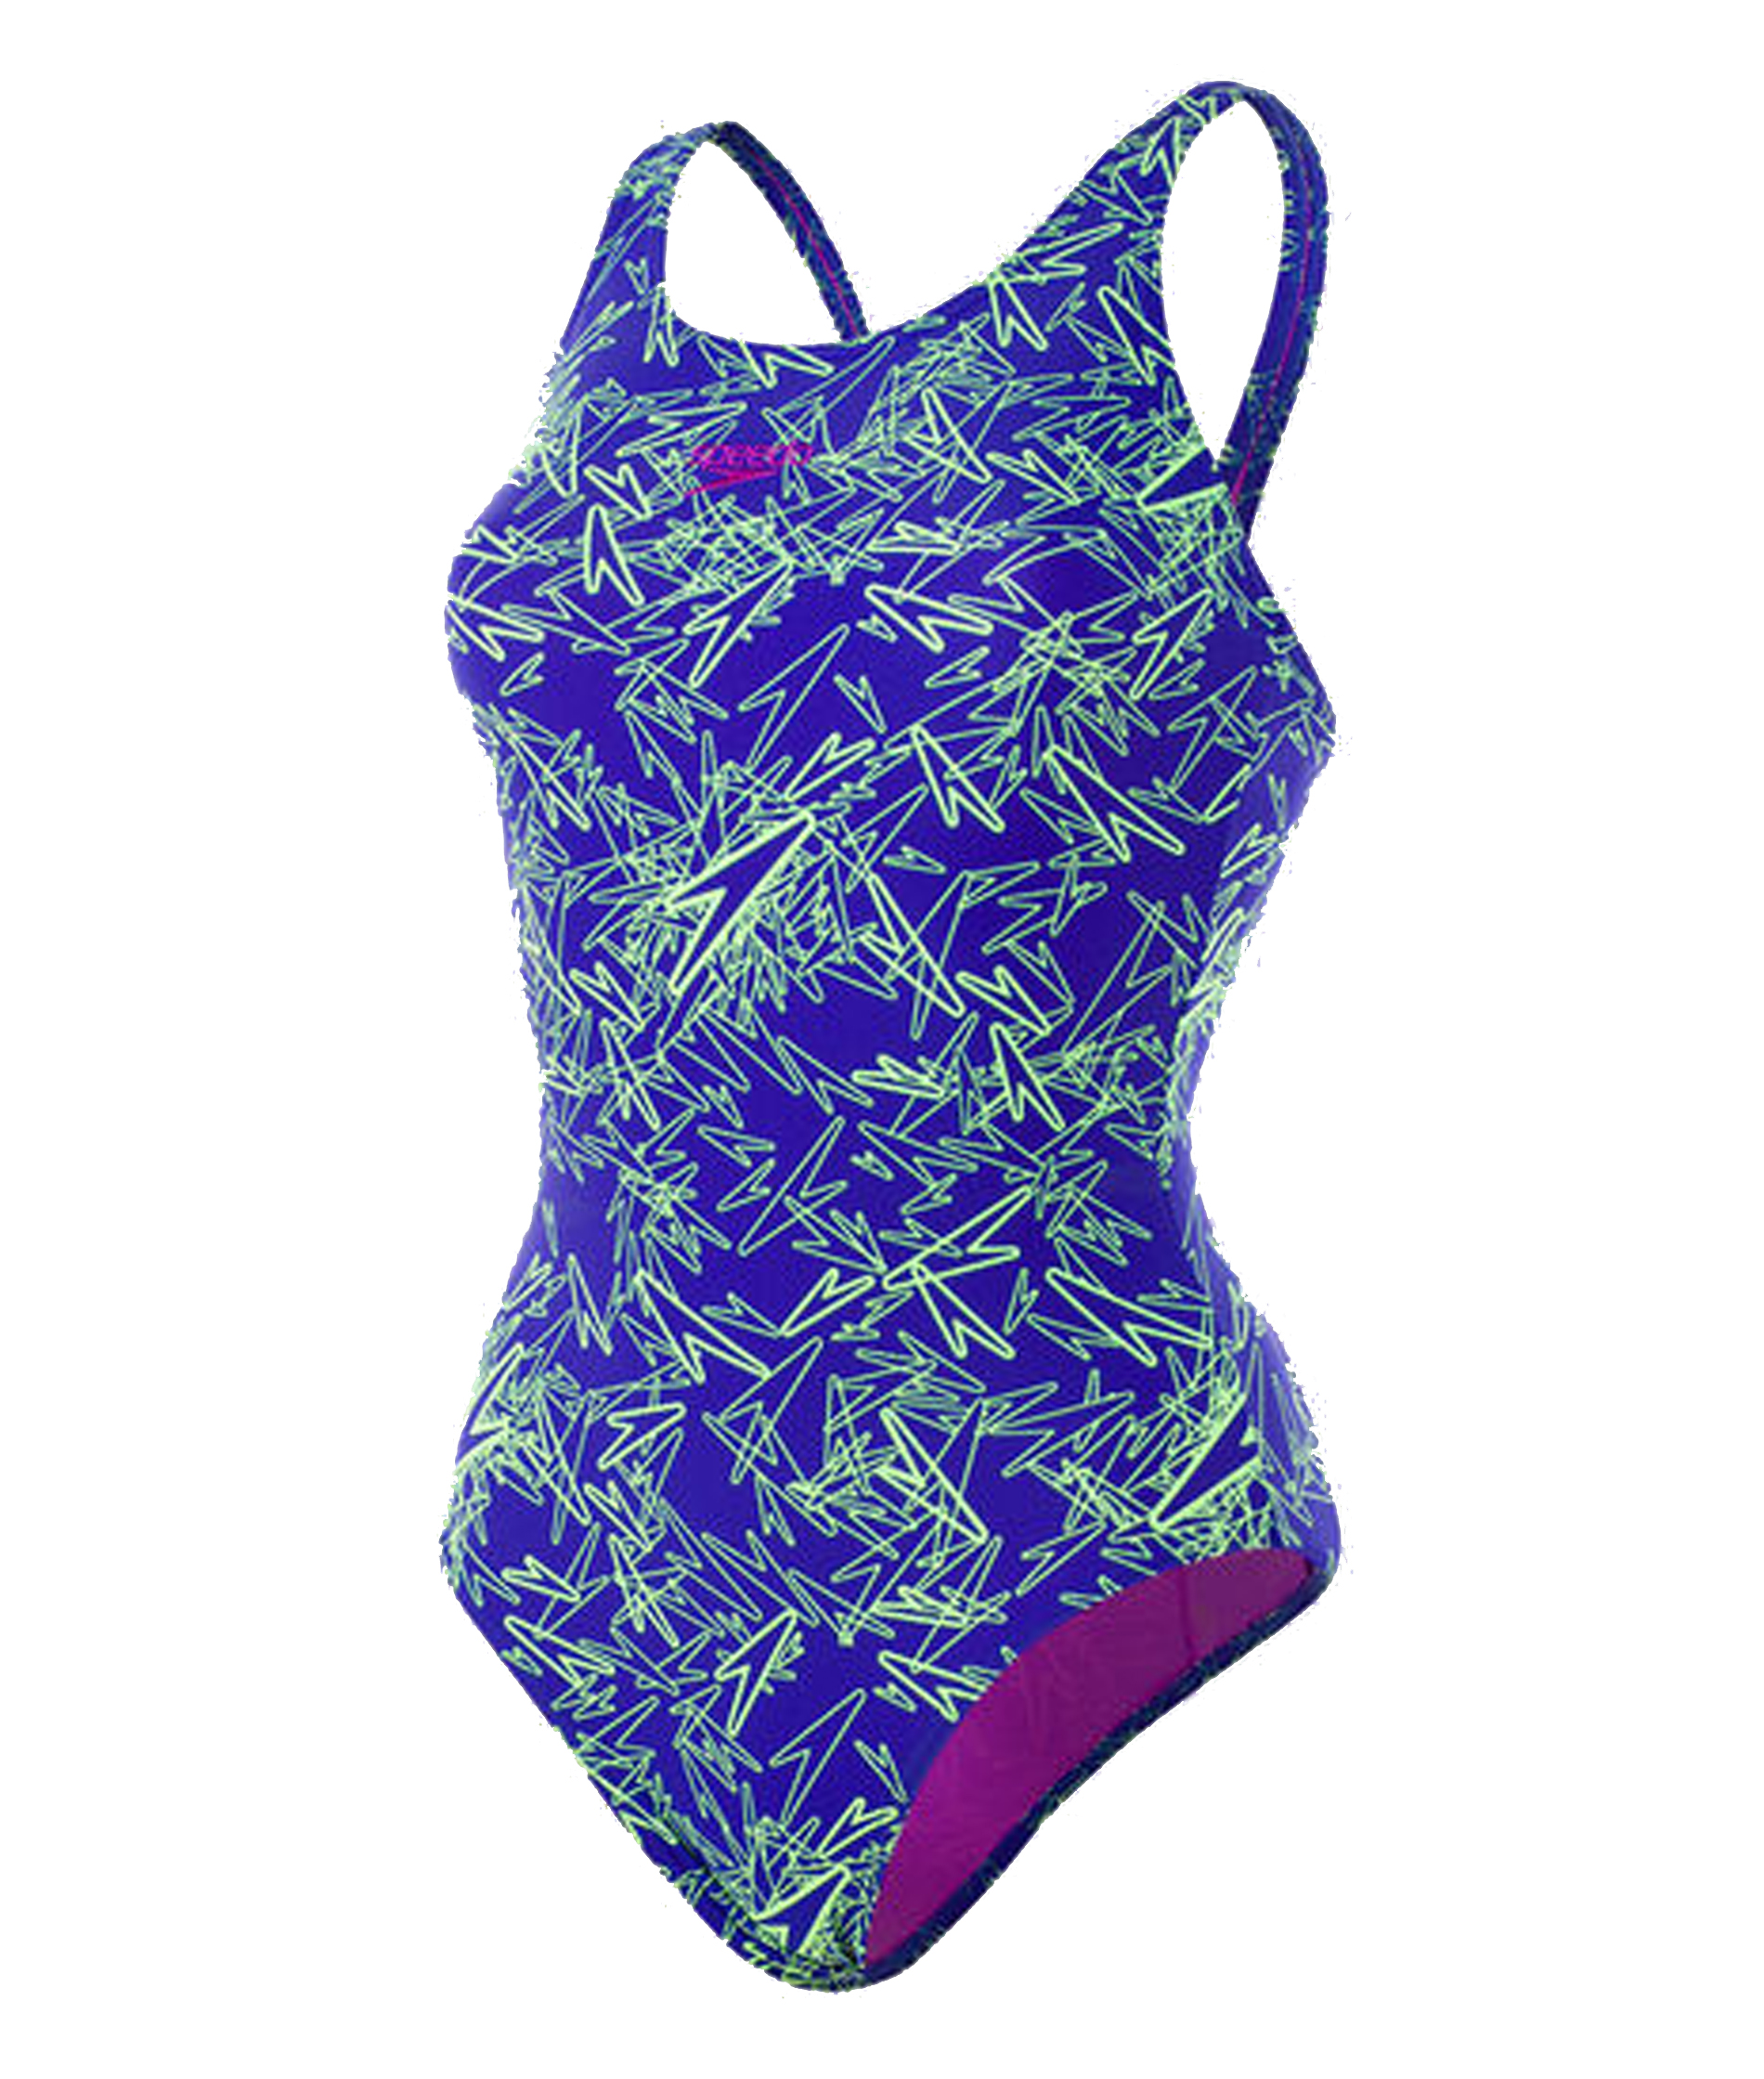 Speedo Boom Allover Muscleback Swimsuit - Blue/Green